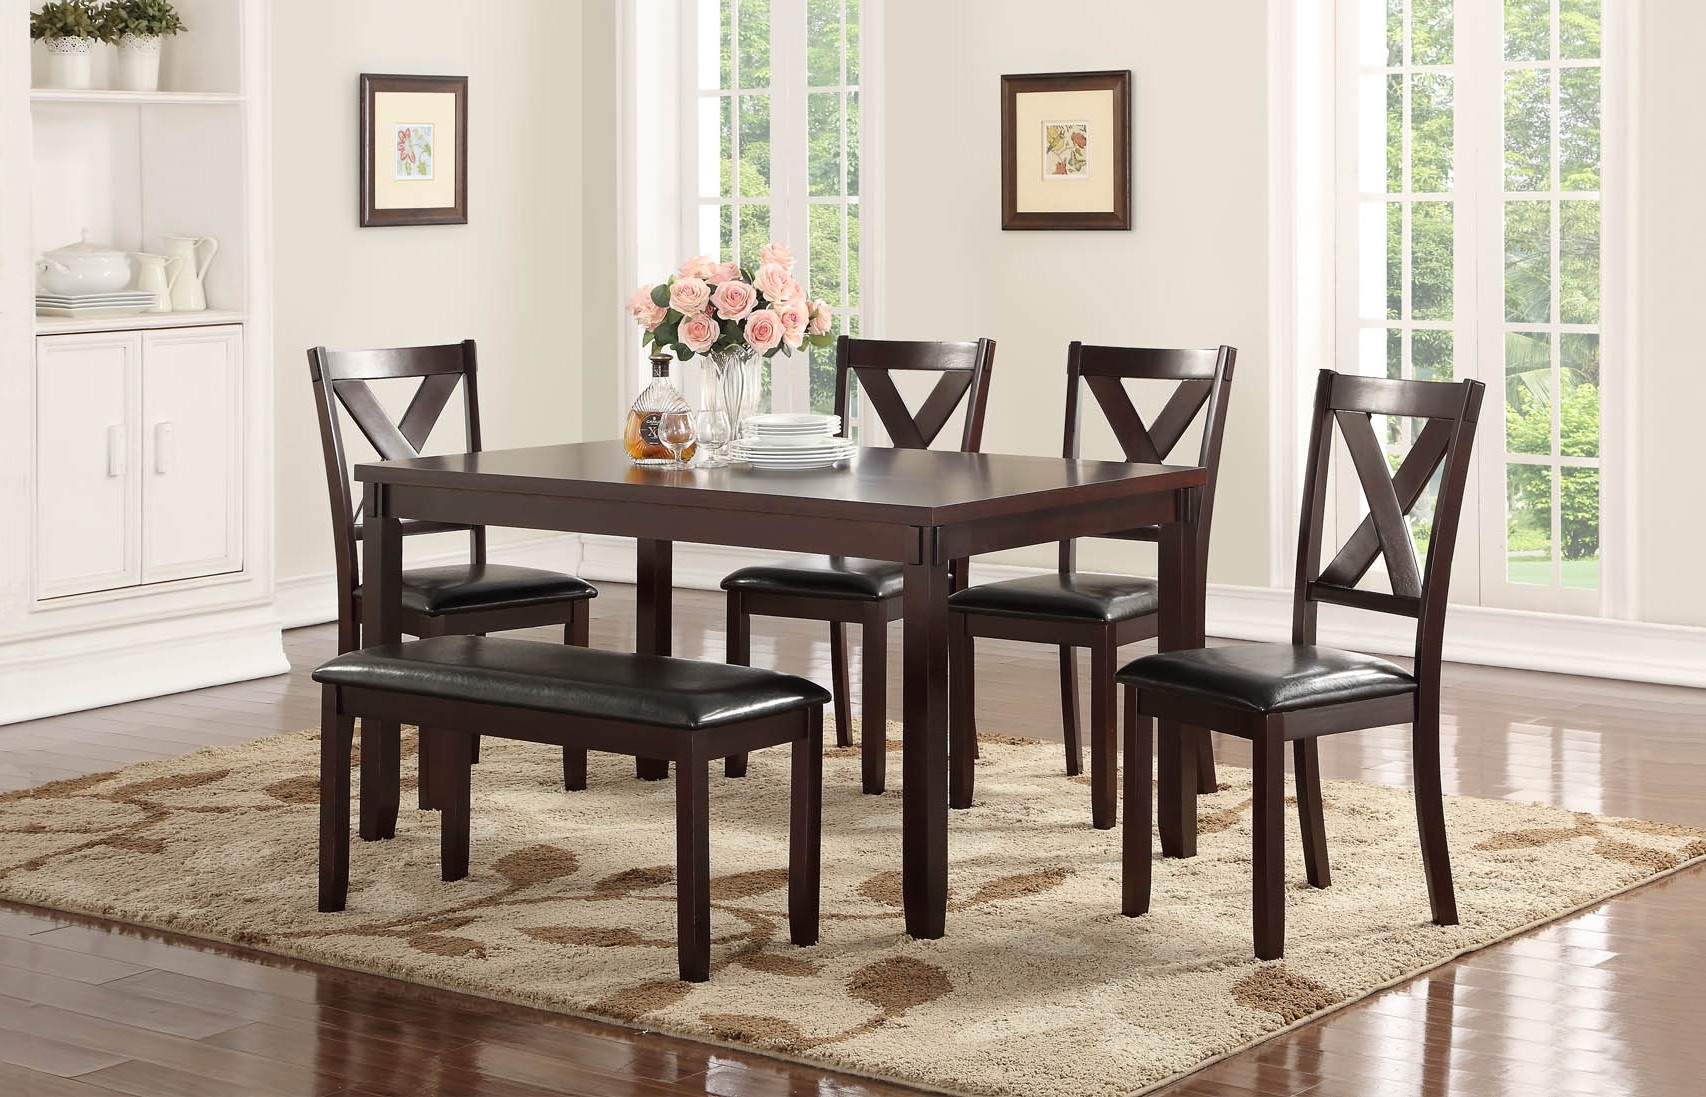 Penelope Collection 6 Pc Dining Set With Bench | Orange County, Ca With Regard To Most Recently Released Penelope 3 Piece Counter Height Wood Dining Sets (Photo 13 of 20)